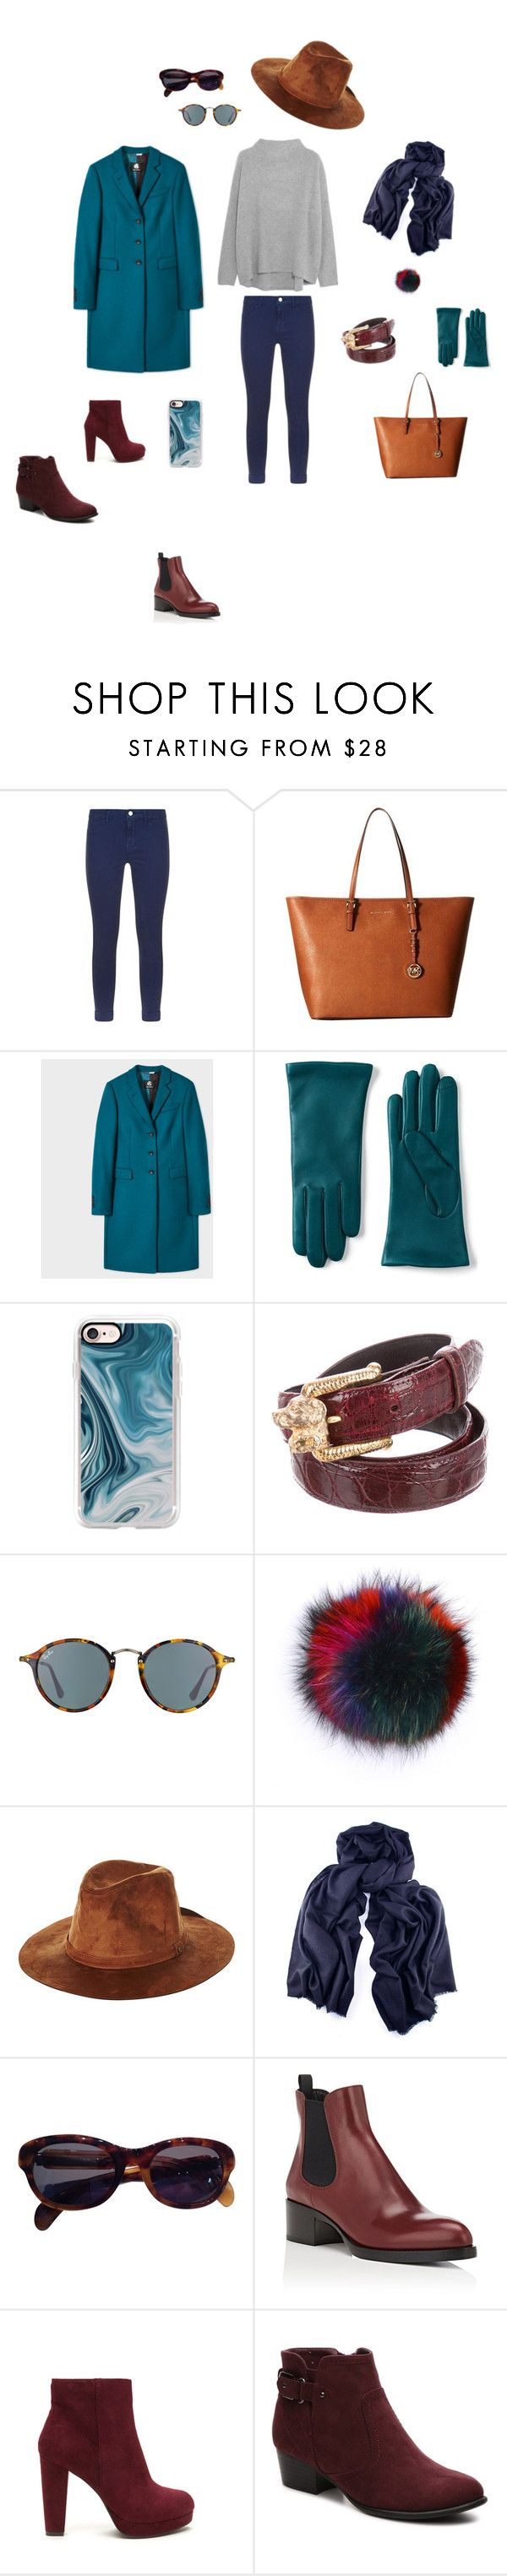 """""""Лук №3 (серый свитер)"""" by madlily86 on Polyvore featuring мода, Vince, J Brand, MICHAEL Michael Kors, Paul Smith, Lands' End, Casetify, Ray-Ban, Bobbl и Brixton"""